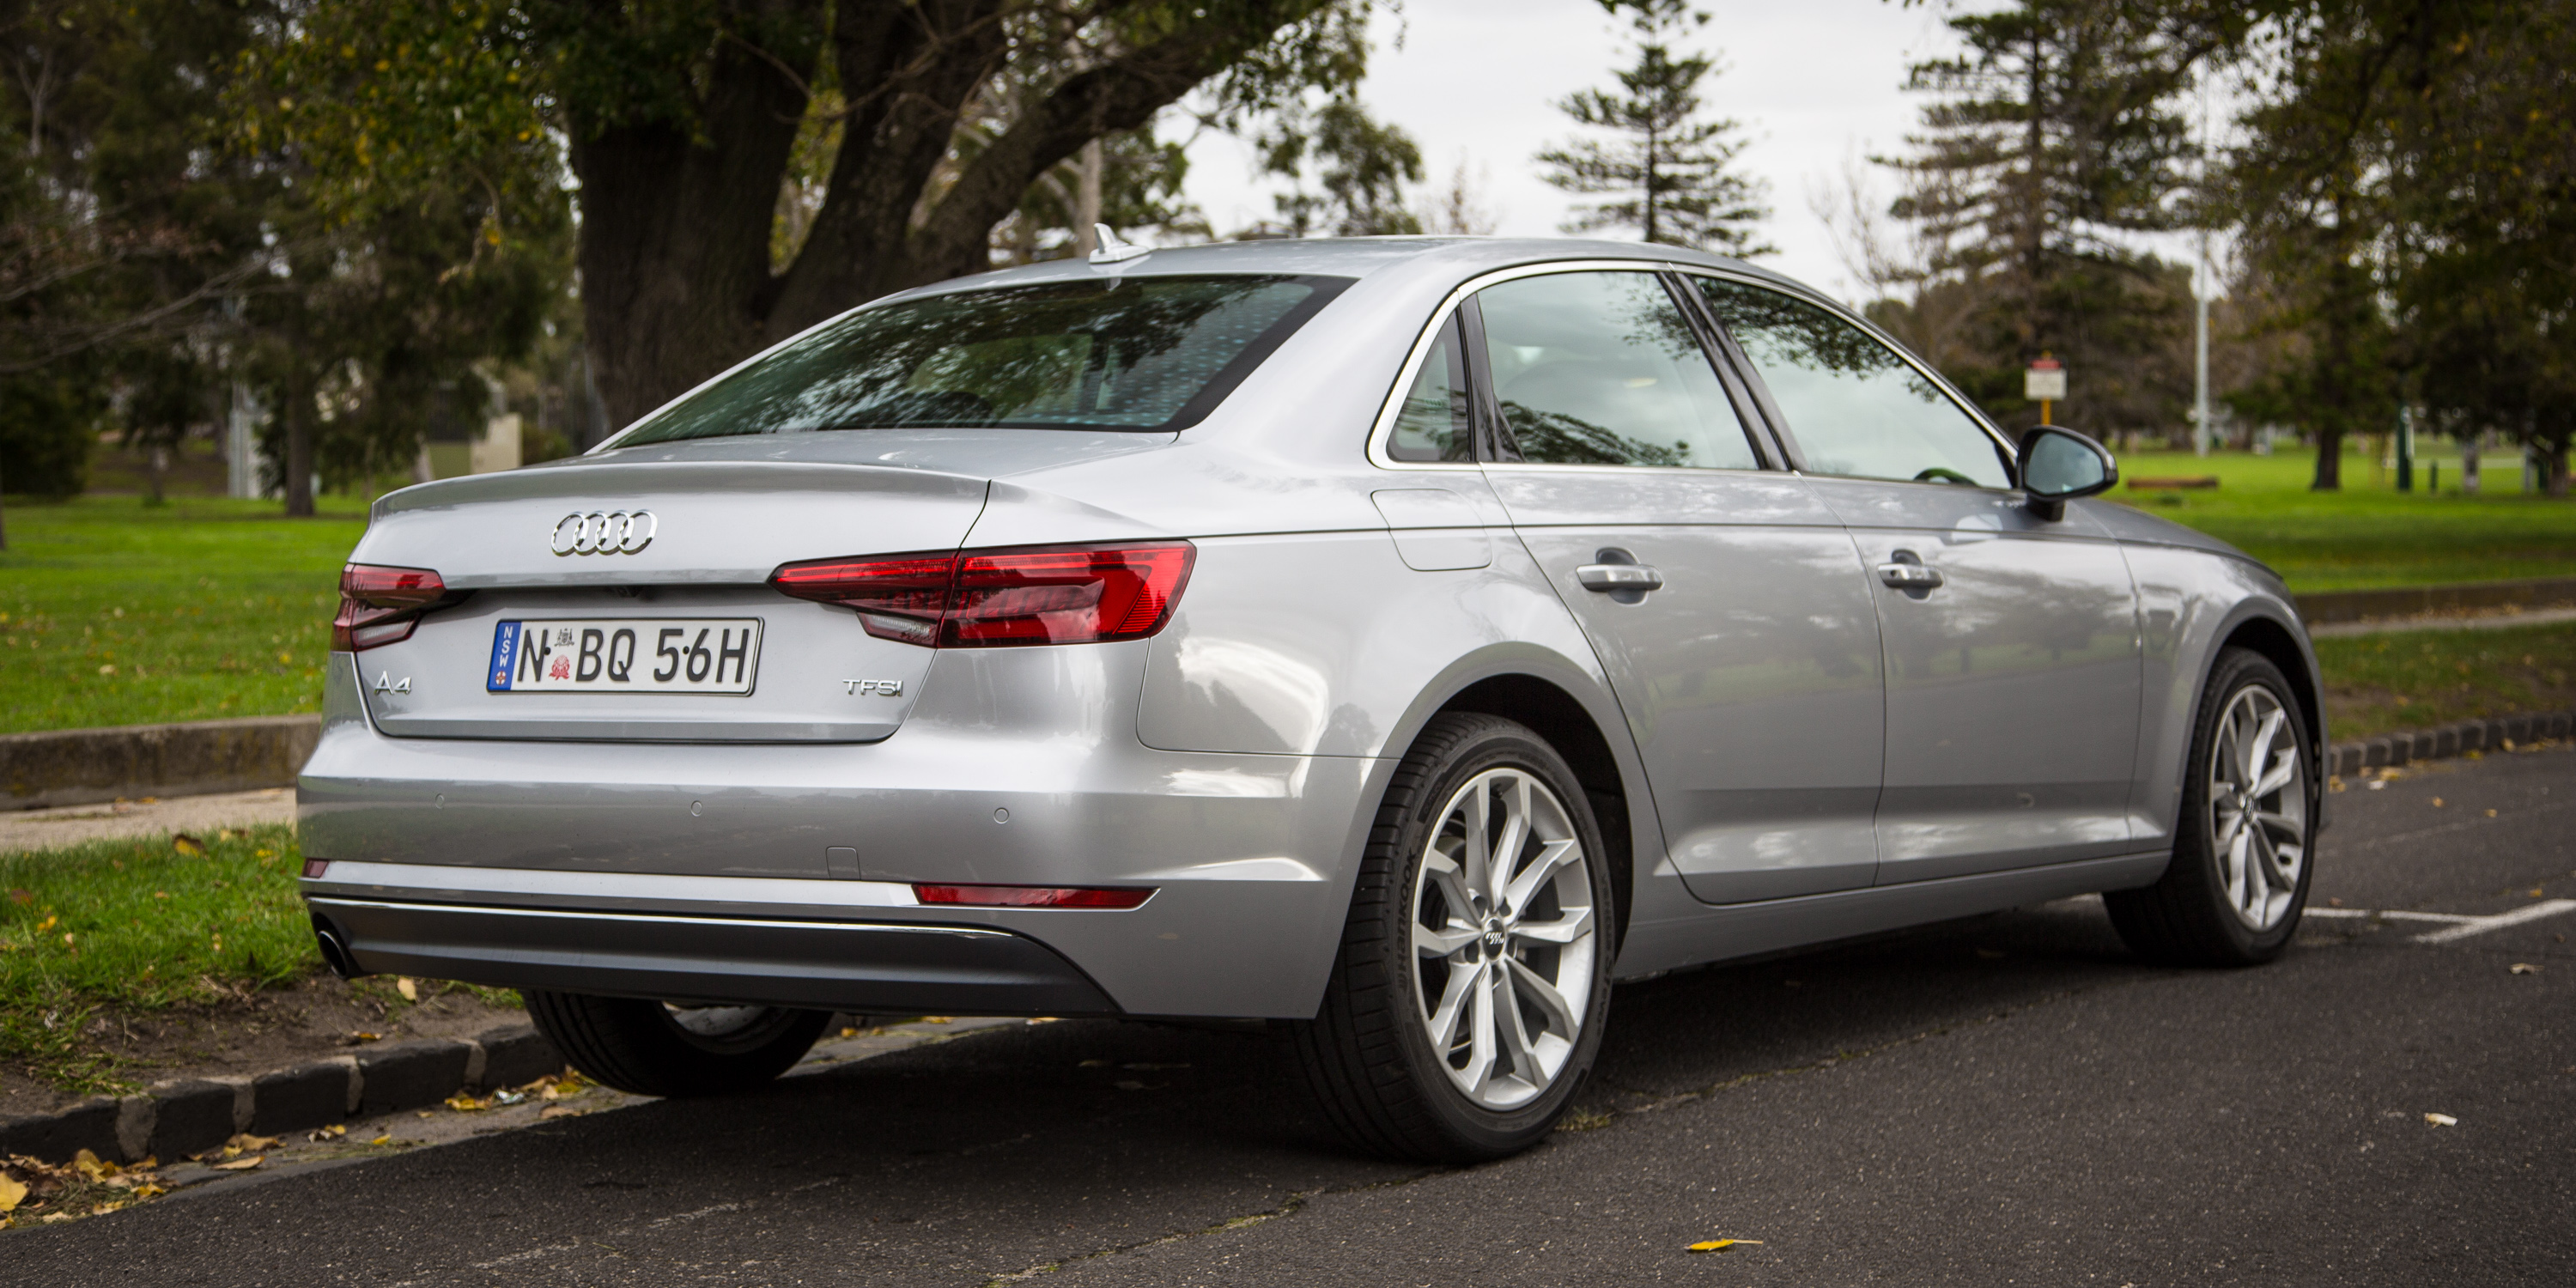 Q7 Review >> 2016 Audi A4 Sedan 1.4 TFSI Review - photos | CarAdvice